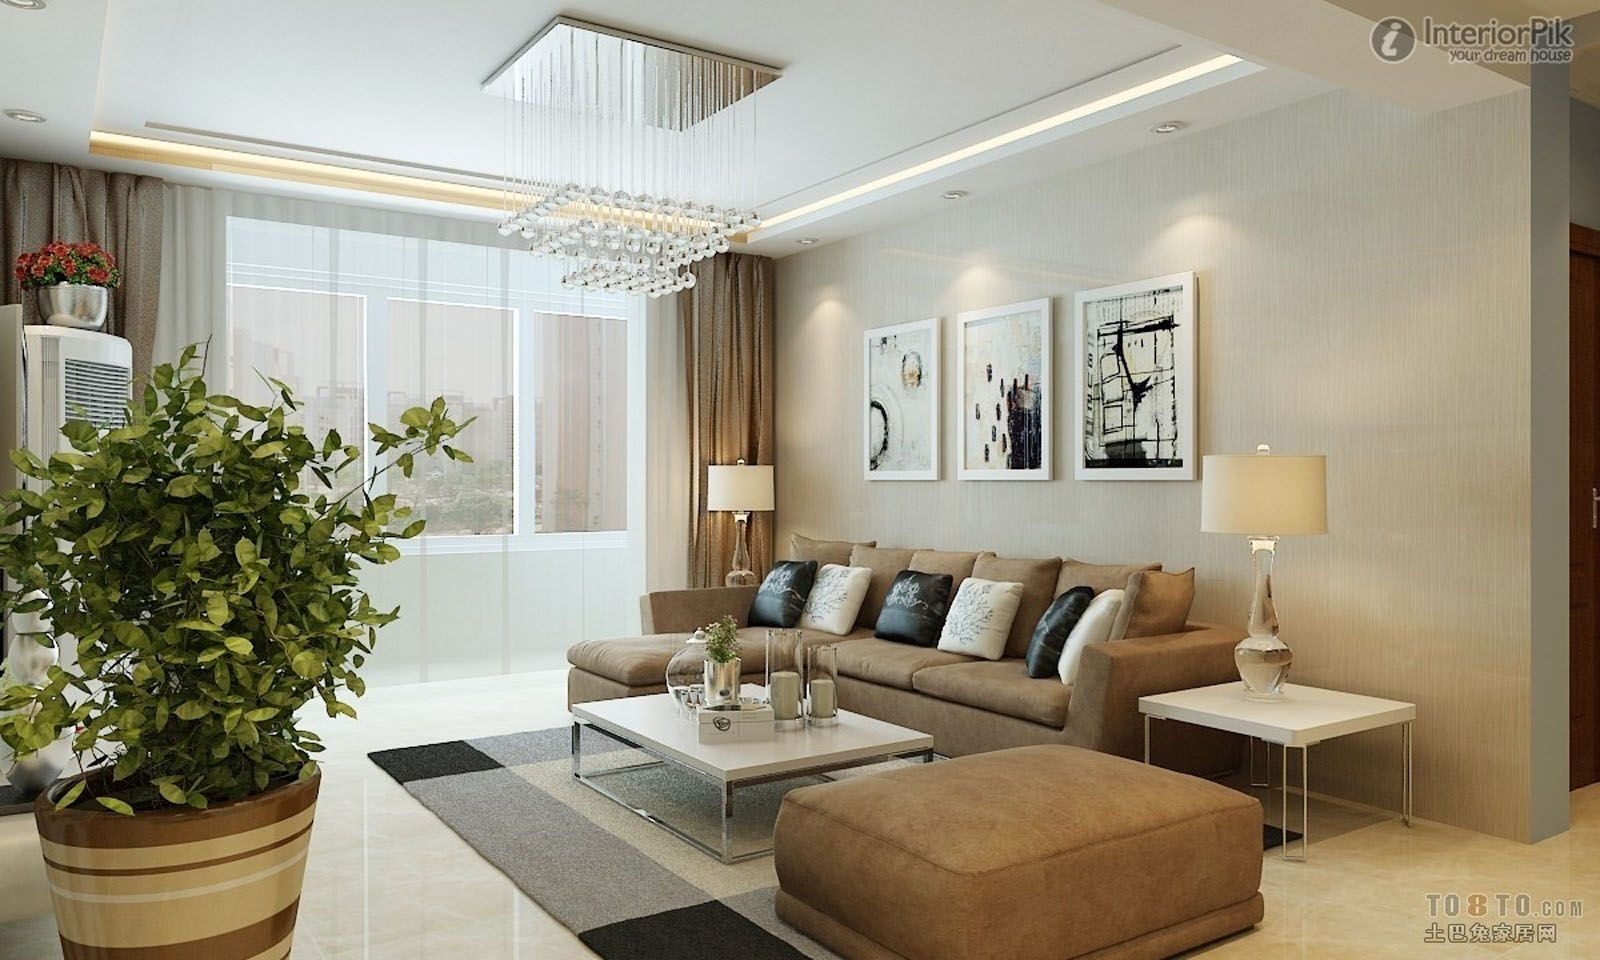 Apartment Living Room Design Amazing Decorating A Living Room On A Budget  Living Rooms Room And Decorating Design